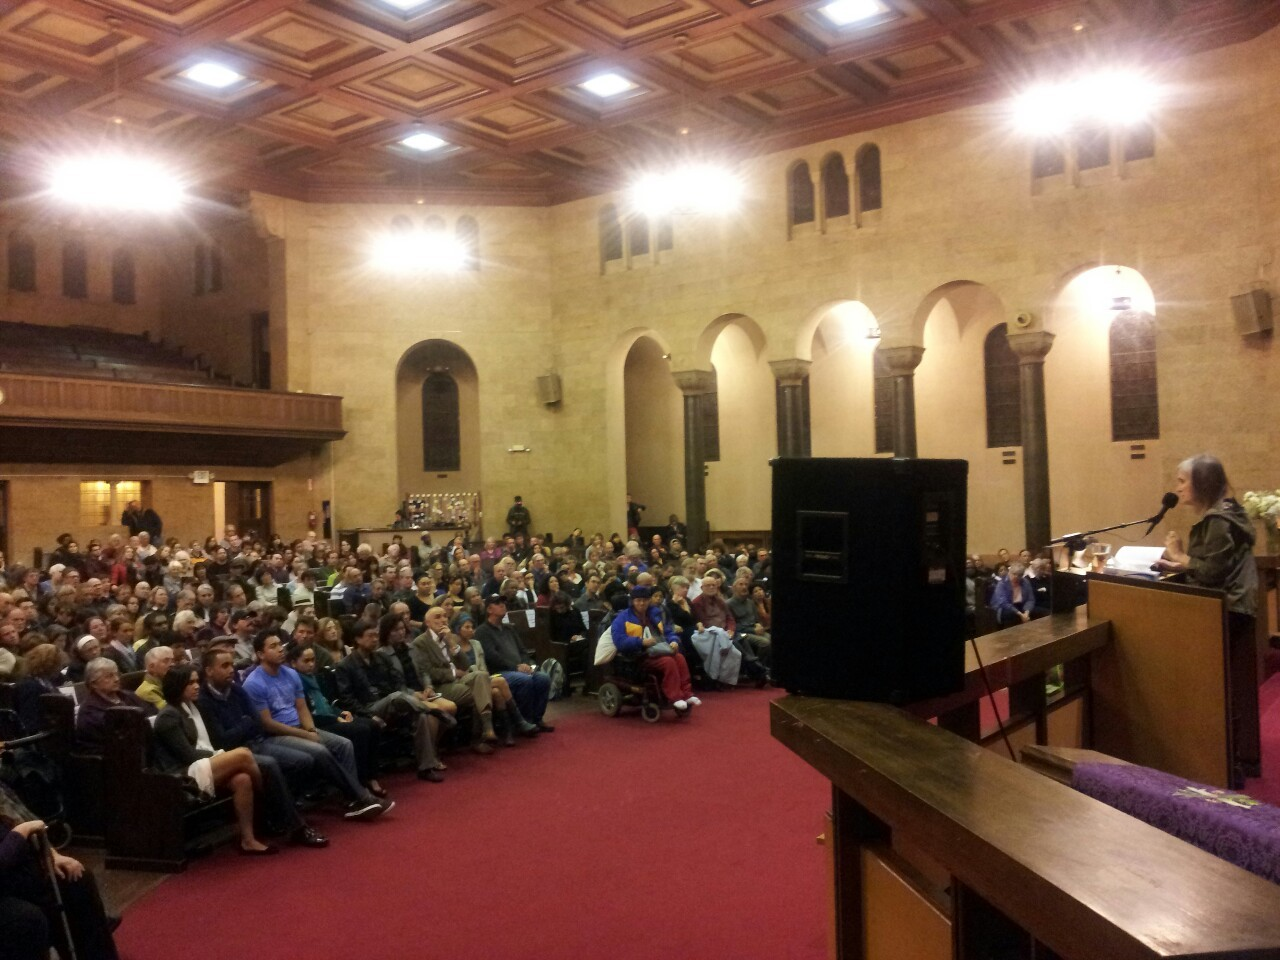 Amy Goodman speaking to a packed house at the KPFA benefit in Oakland, celebrating the first Pacifica station.